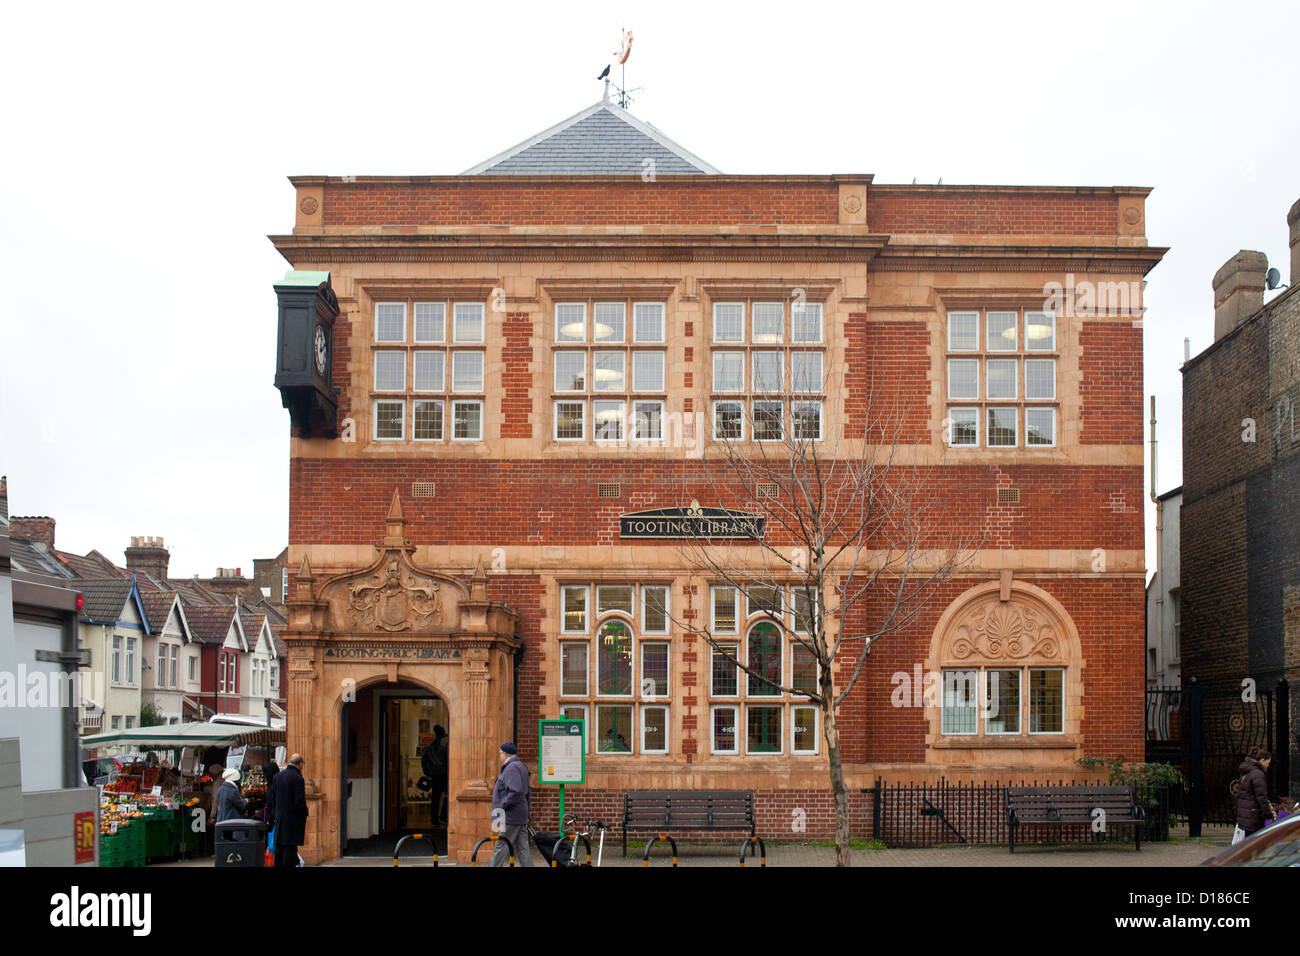 Tooting Library Building in South West London, 2012 - Stock Image